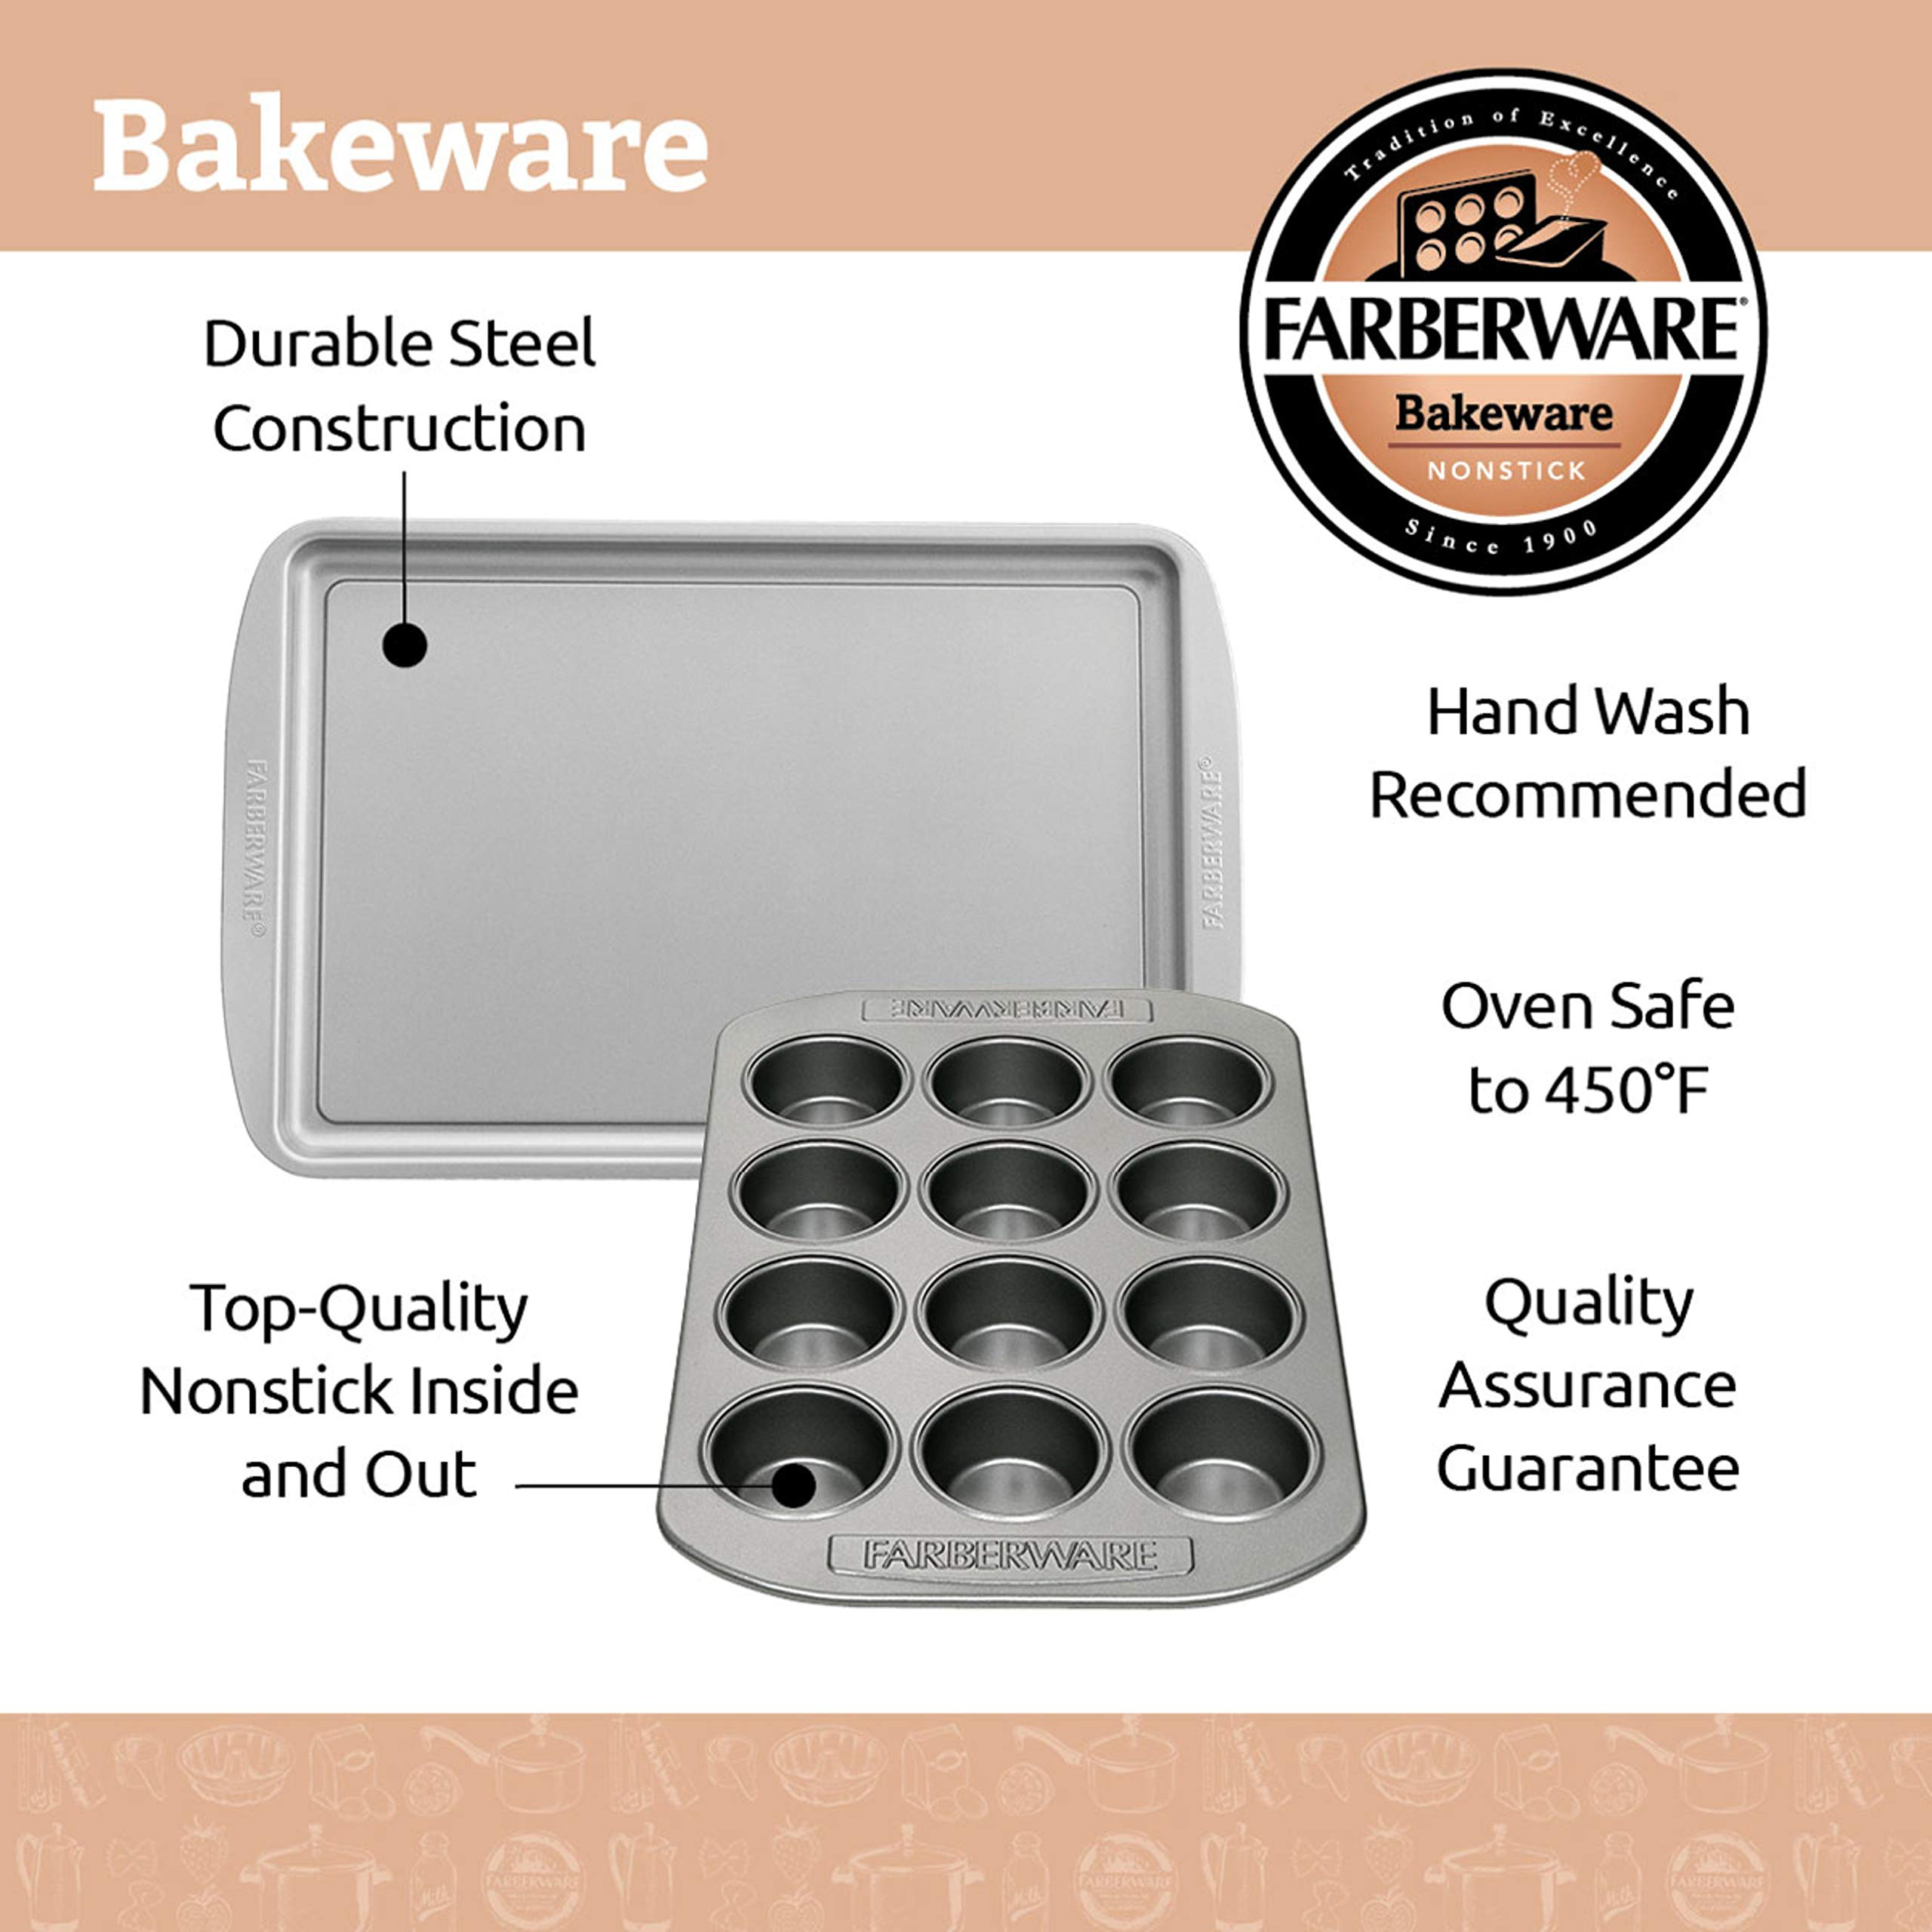 Farberware 47741 2-Piece Bakeware Set Steel Baking Sheet, Gray by Farberware (Image #1)